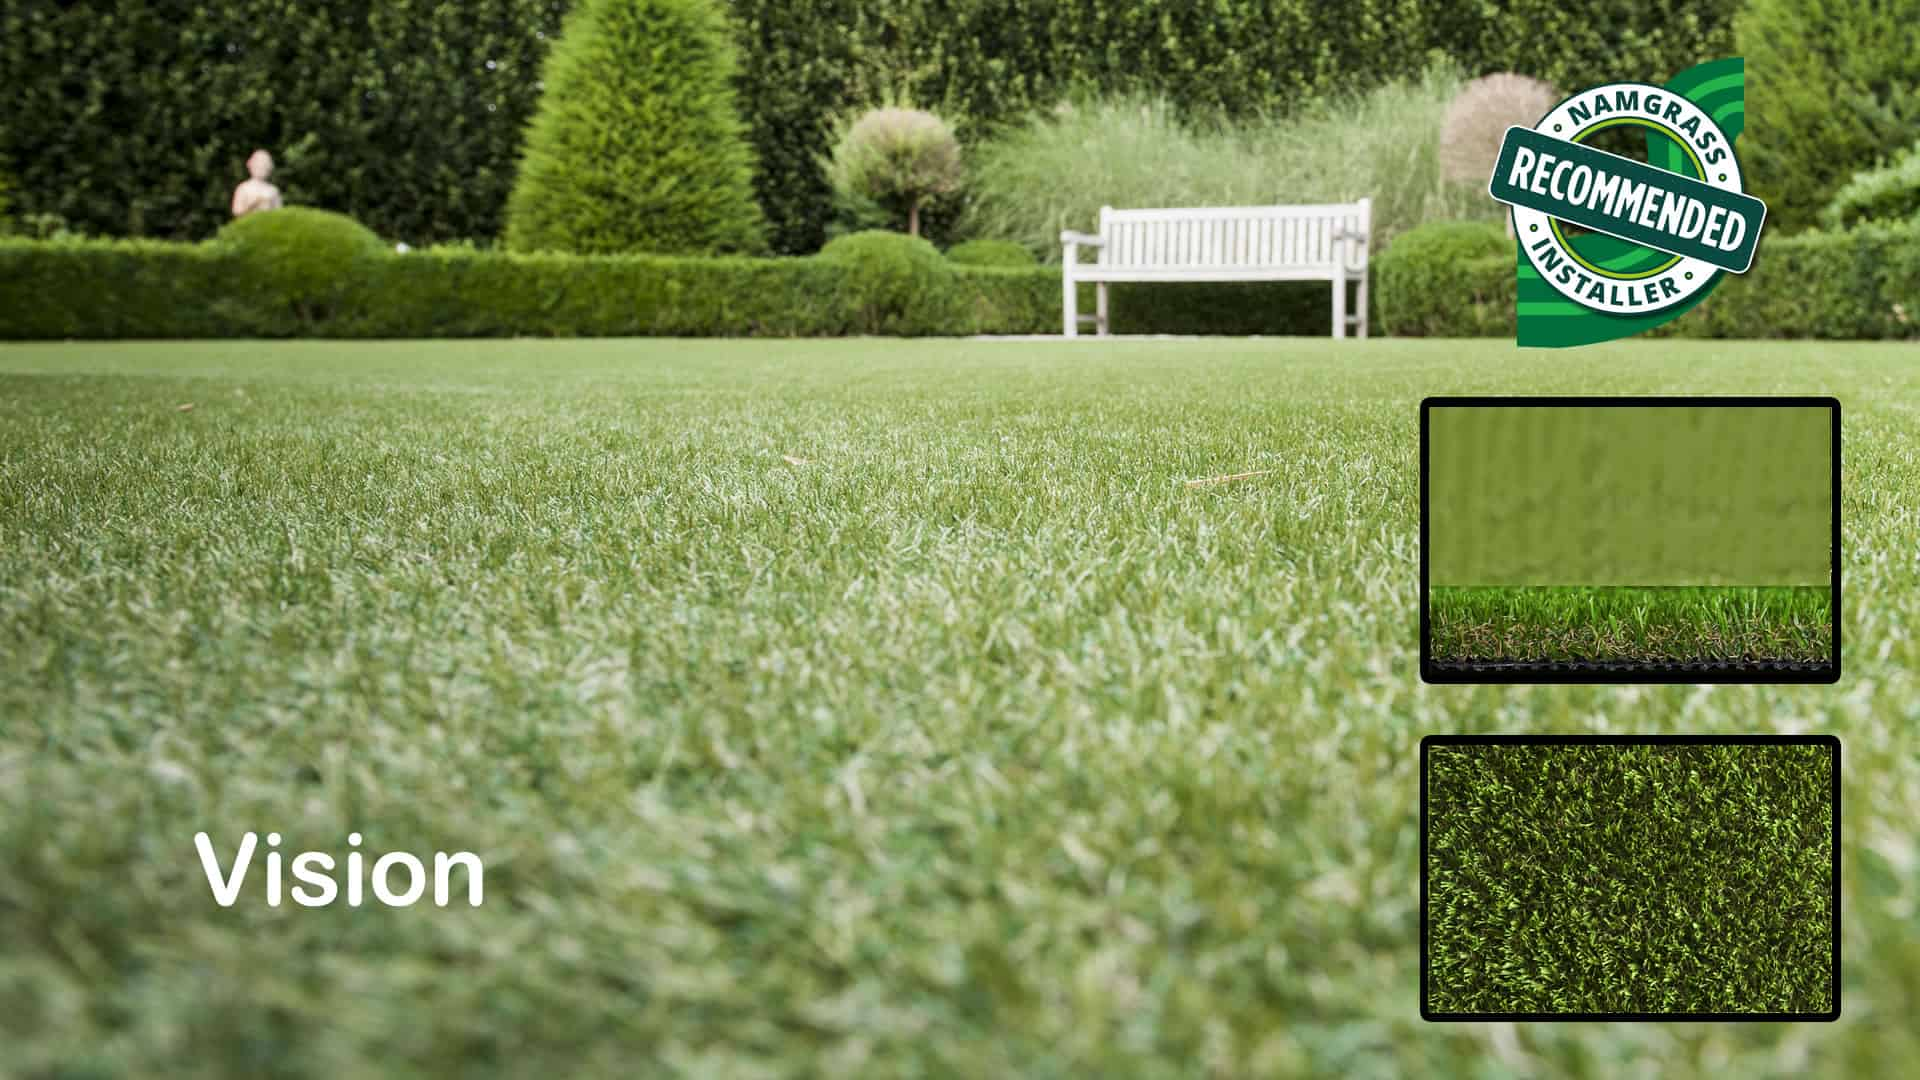 Vision Namgrass artificial grass